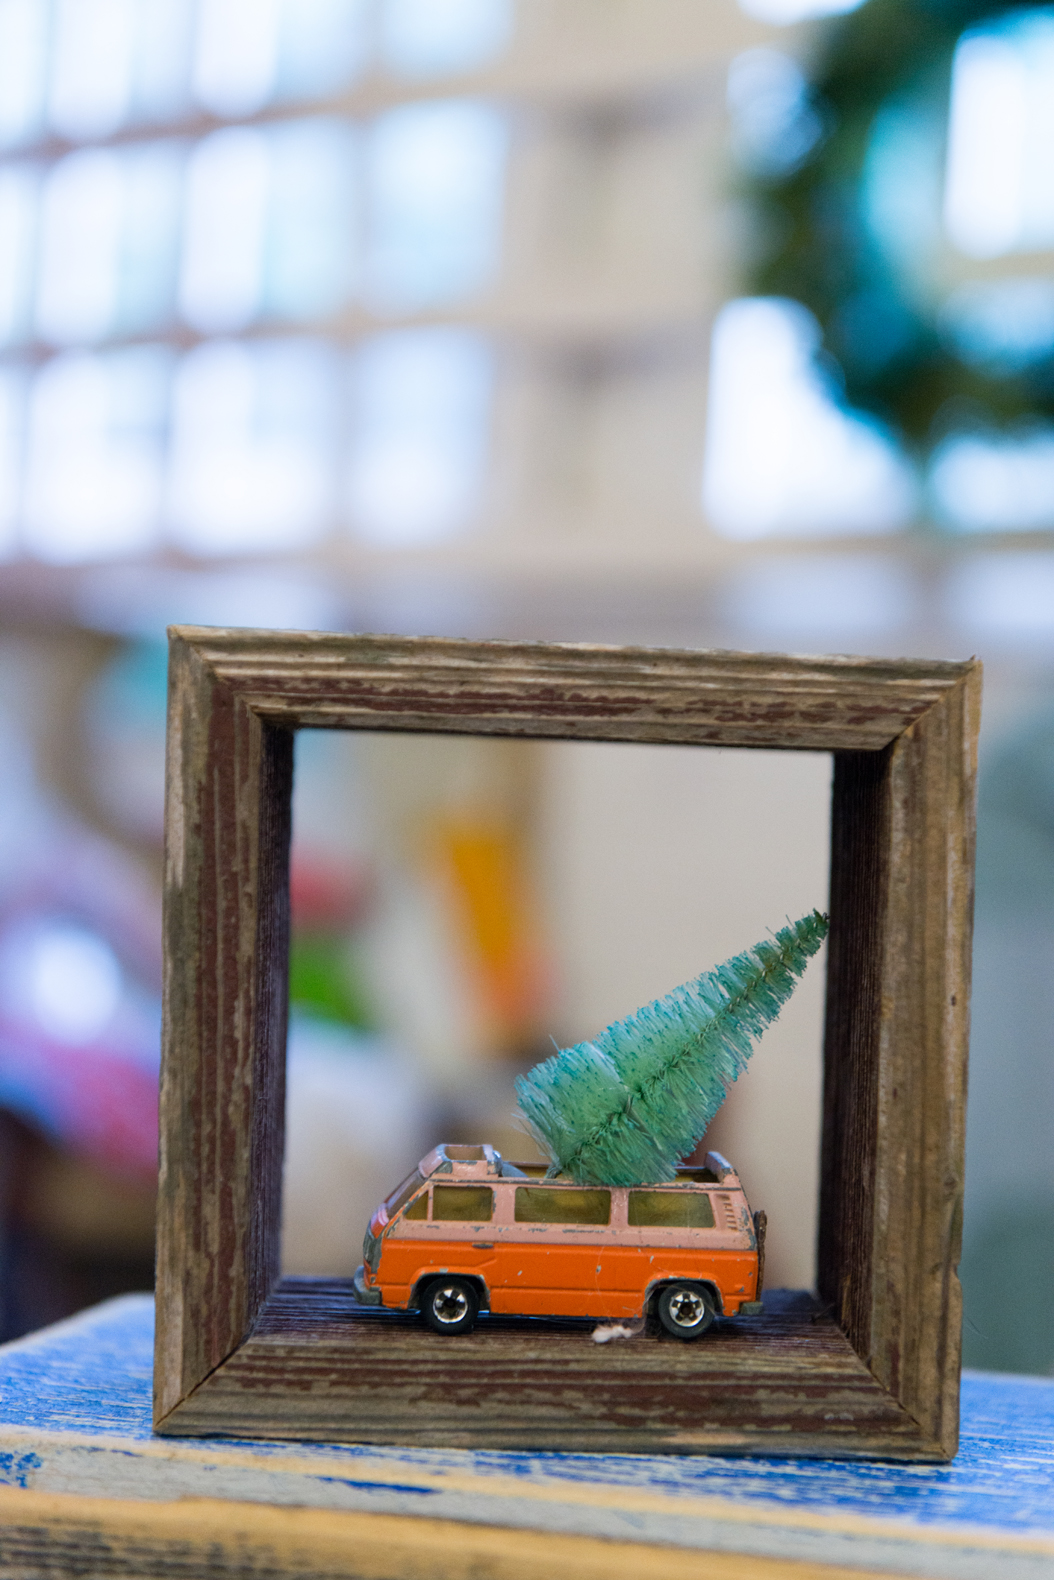 Toy car with a Christmas tree